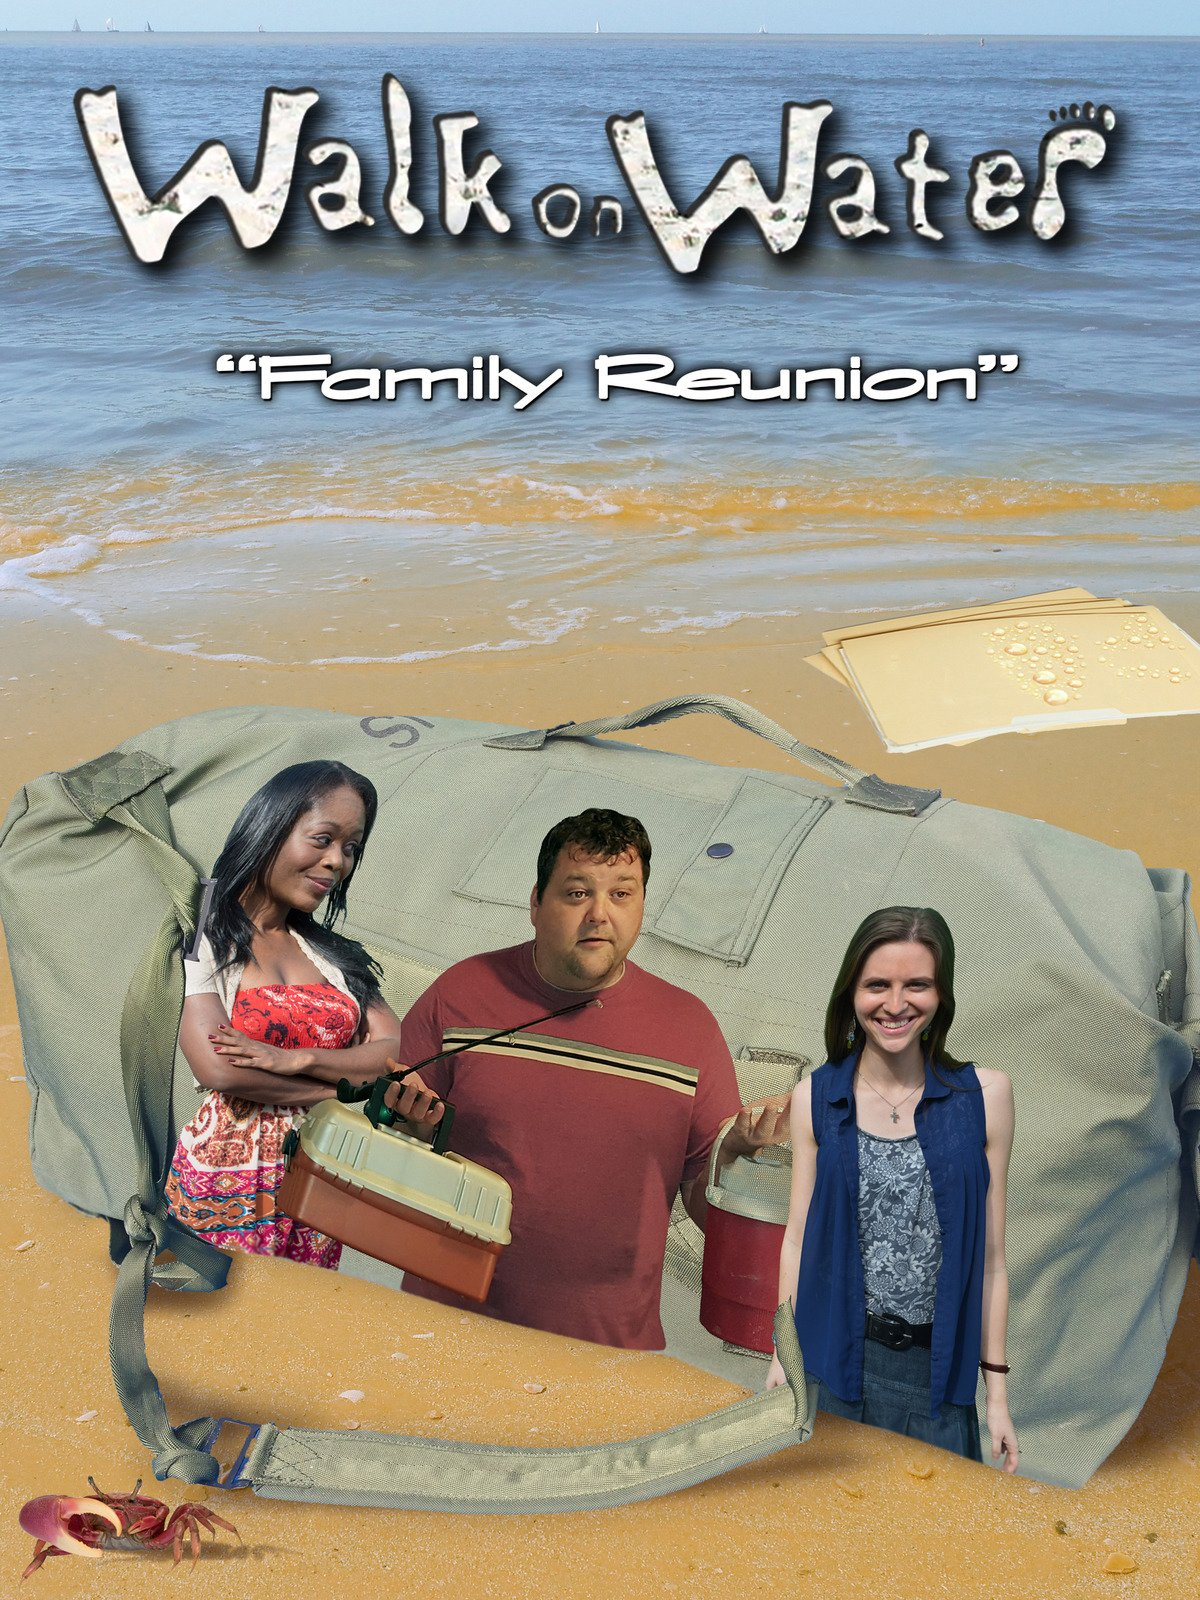 Walk on Water, Family Reunion